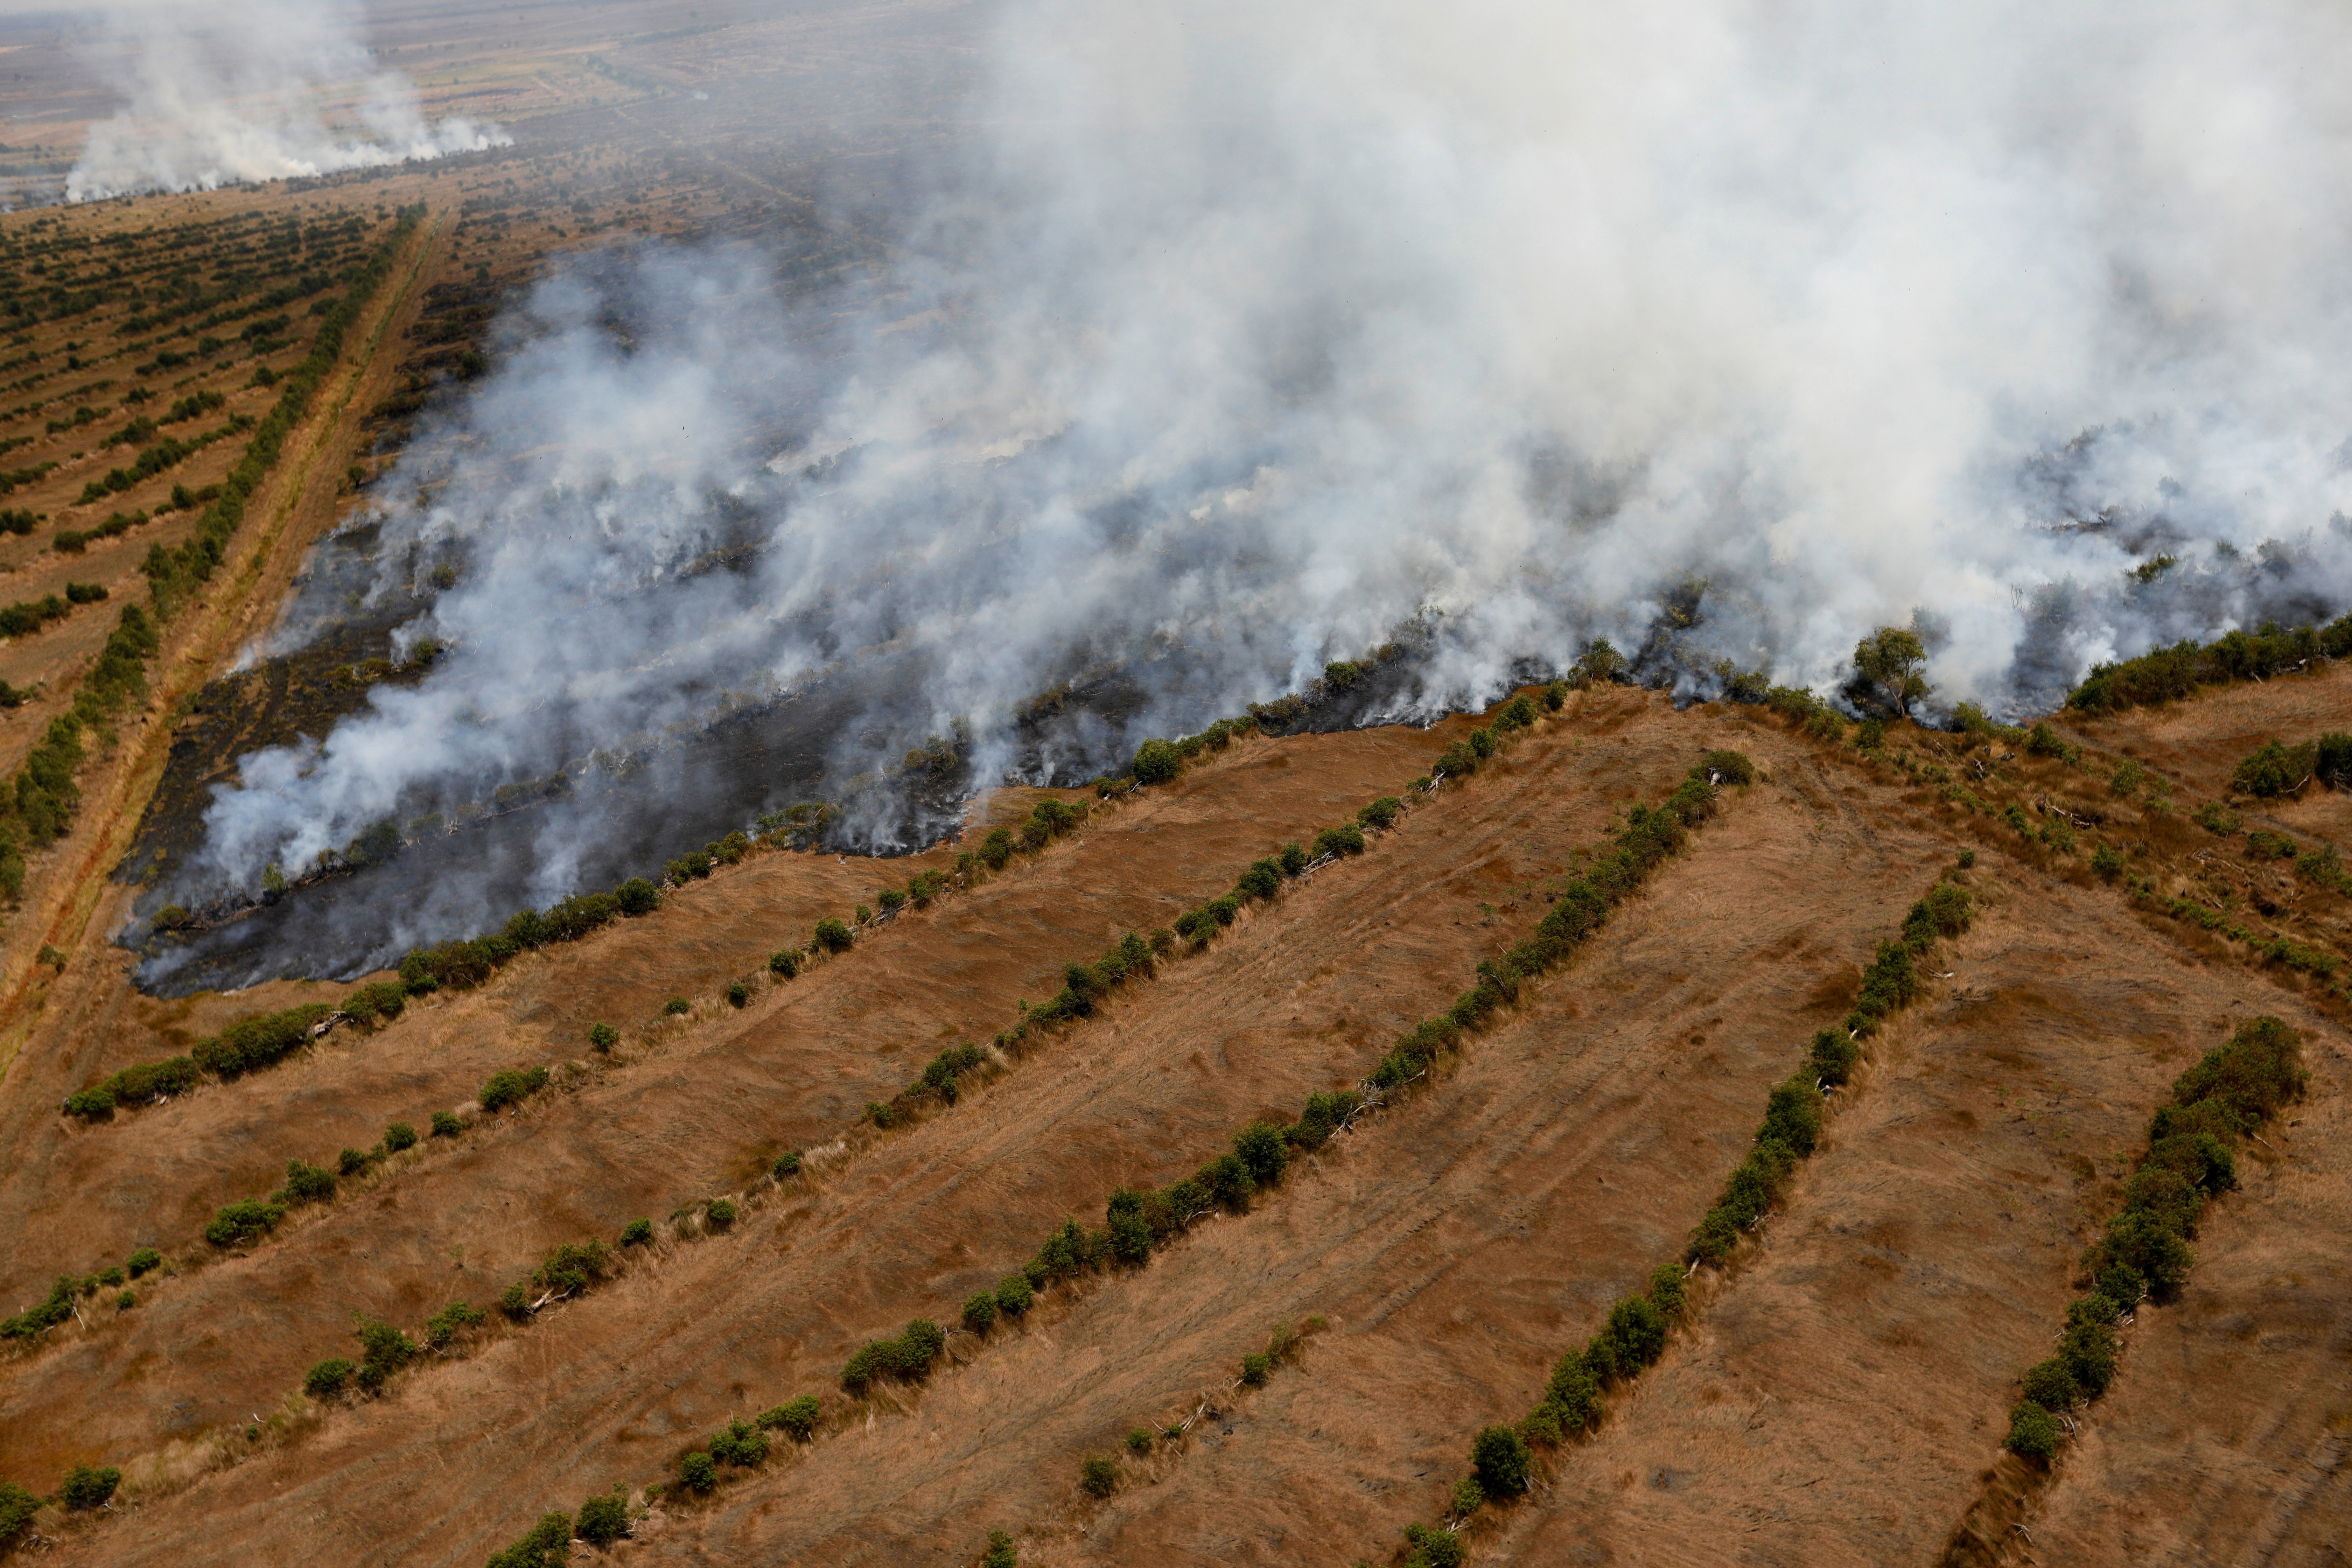 Smoke rises from a peatland during fires near Banjarmasin in South Kalimantan province, Indonesia, September 29, 2019. REUTERS/Willy Kurniawan REFILE - CORRECTING NAME OF THE PROVINCE - RC1380B8E5E0